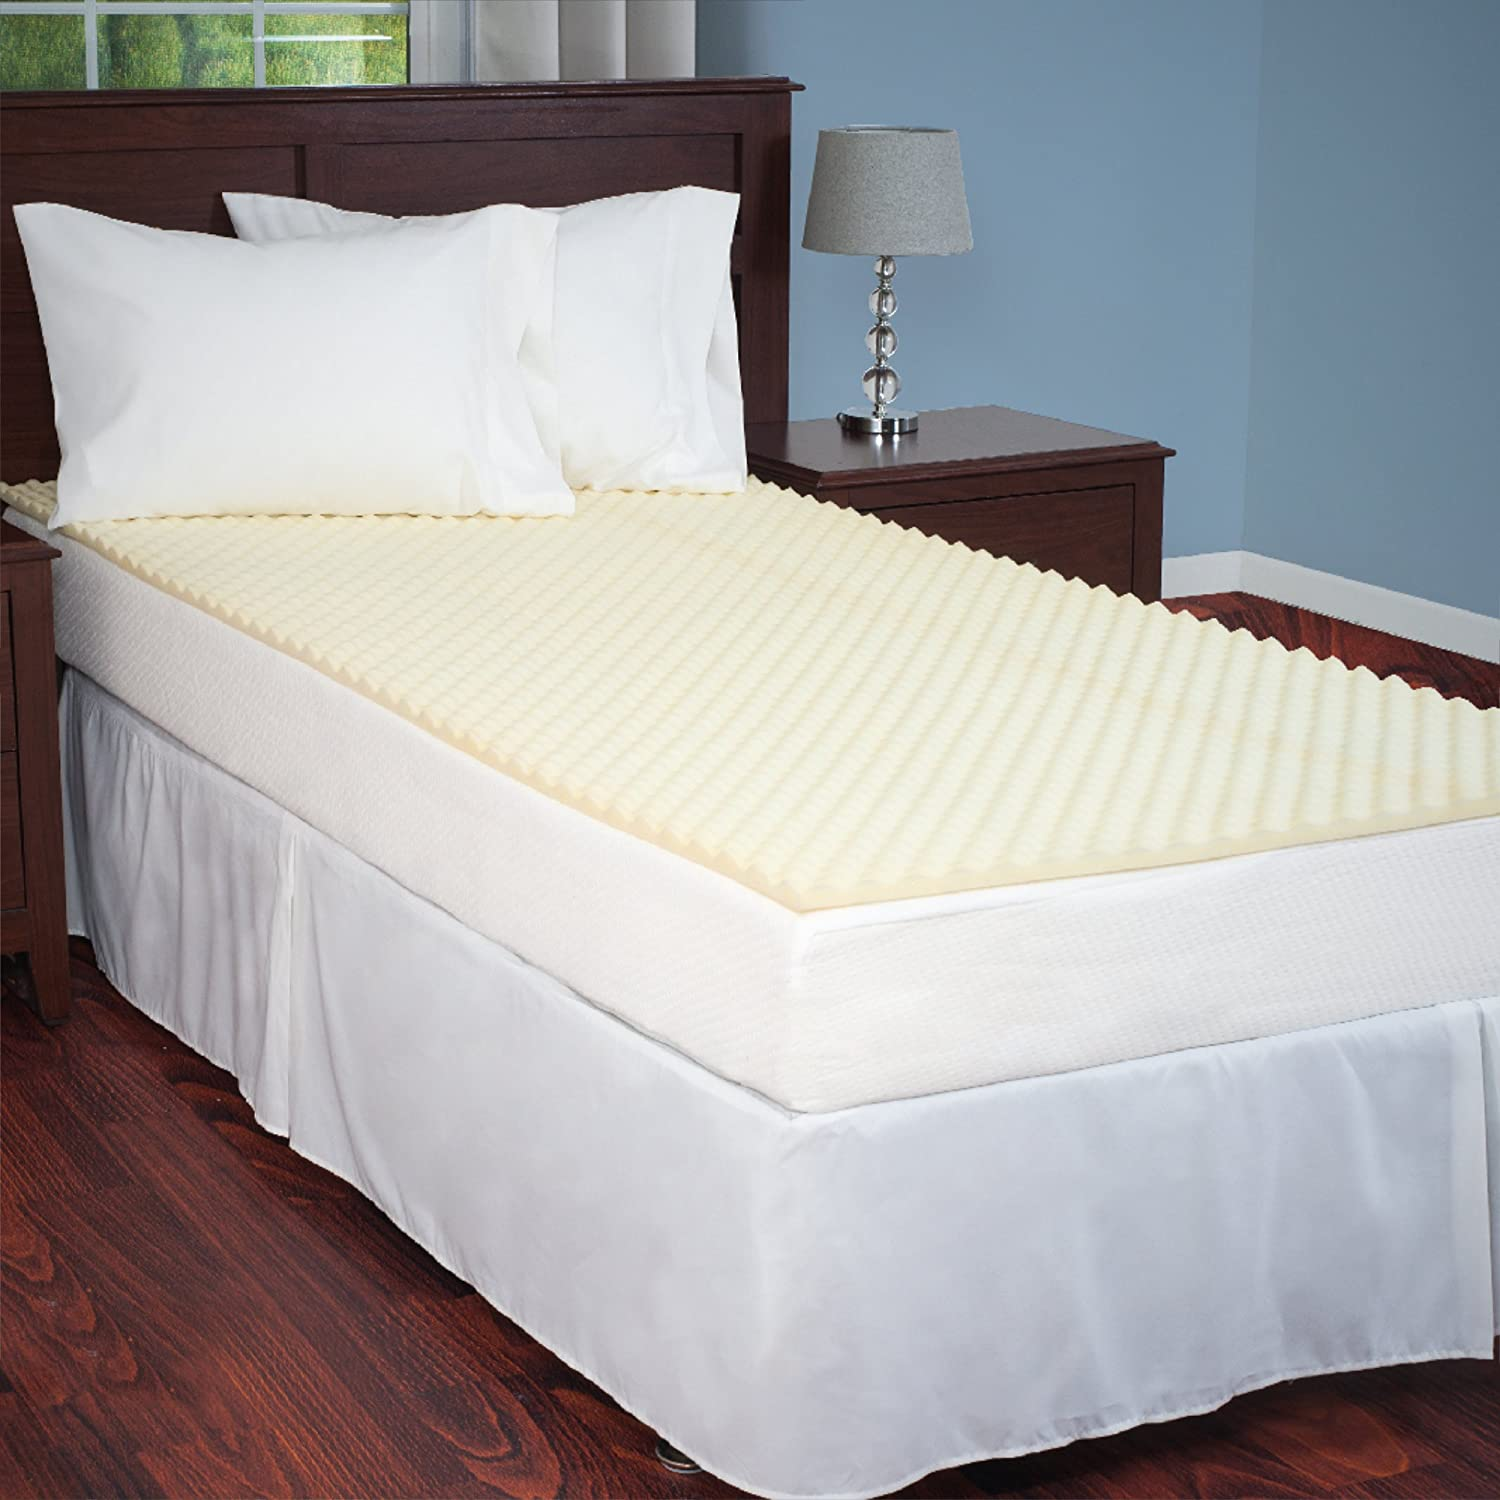 egg crate mattress topper queen Amazon.com: Egg Crate Mattress Topper Twin XL designed to add  egg crate mattress topper queen